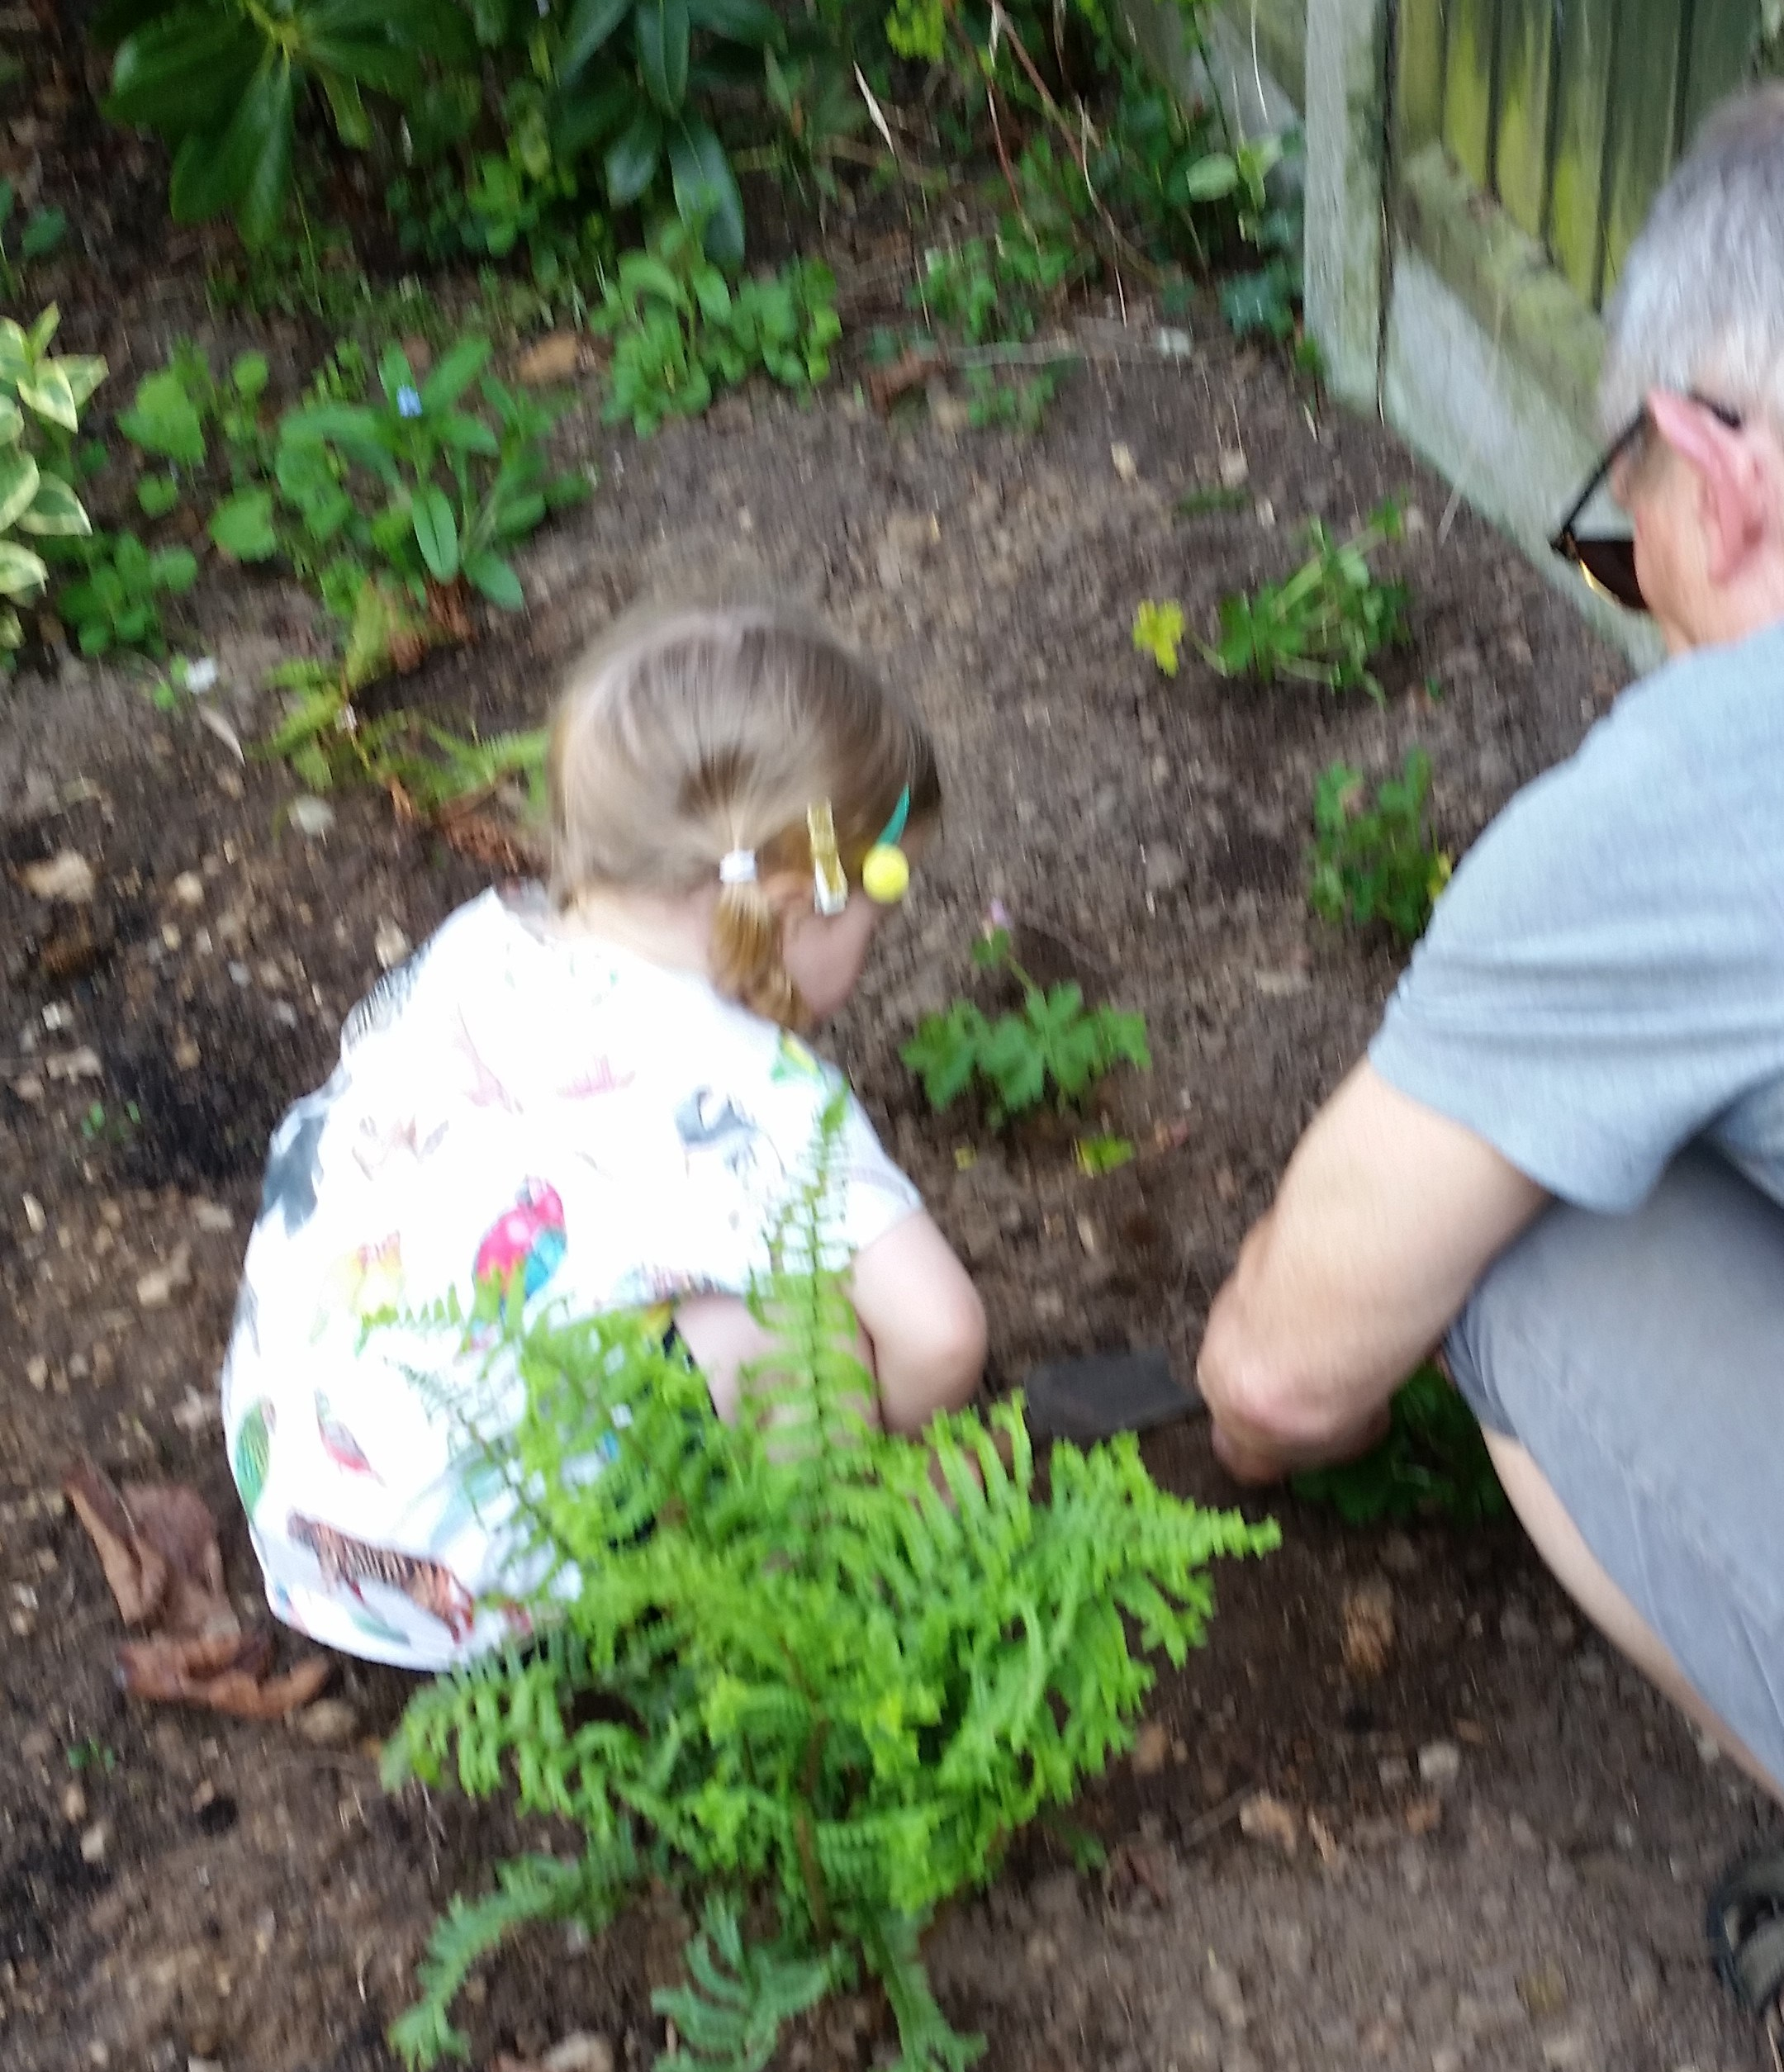 A young child squats in a flower bed with an adult as they undertake a gardening activity together